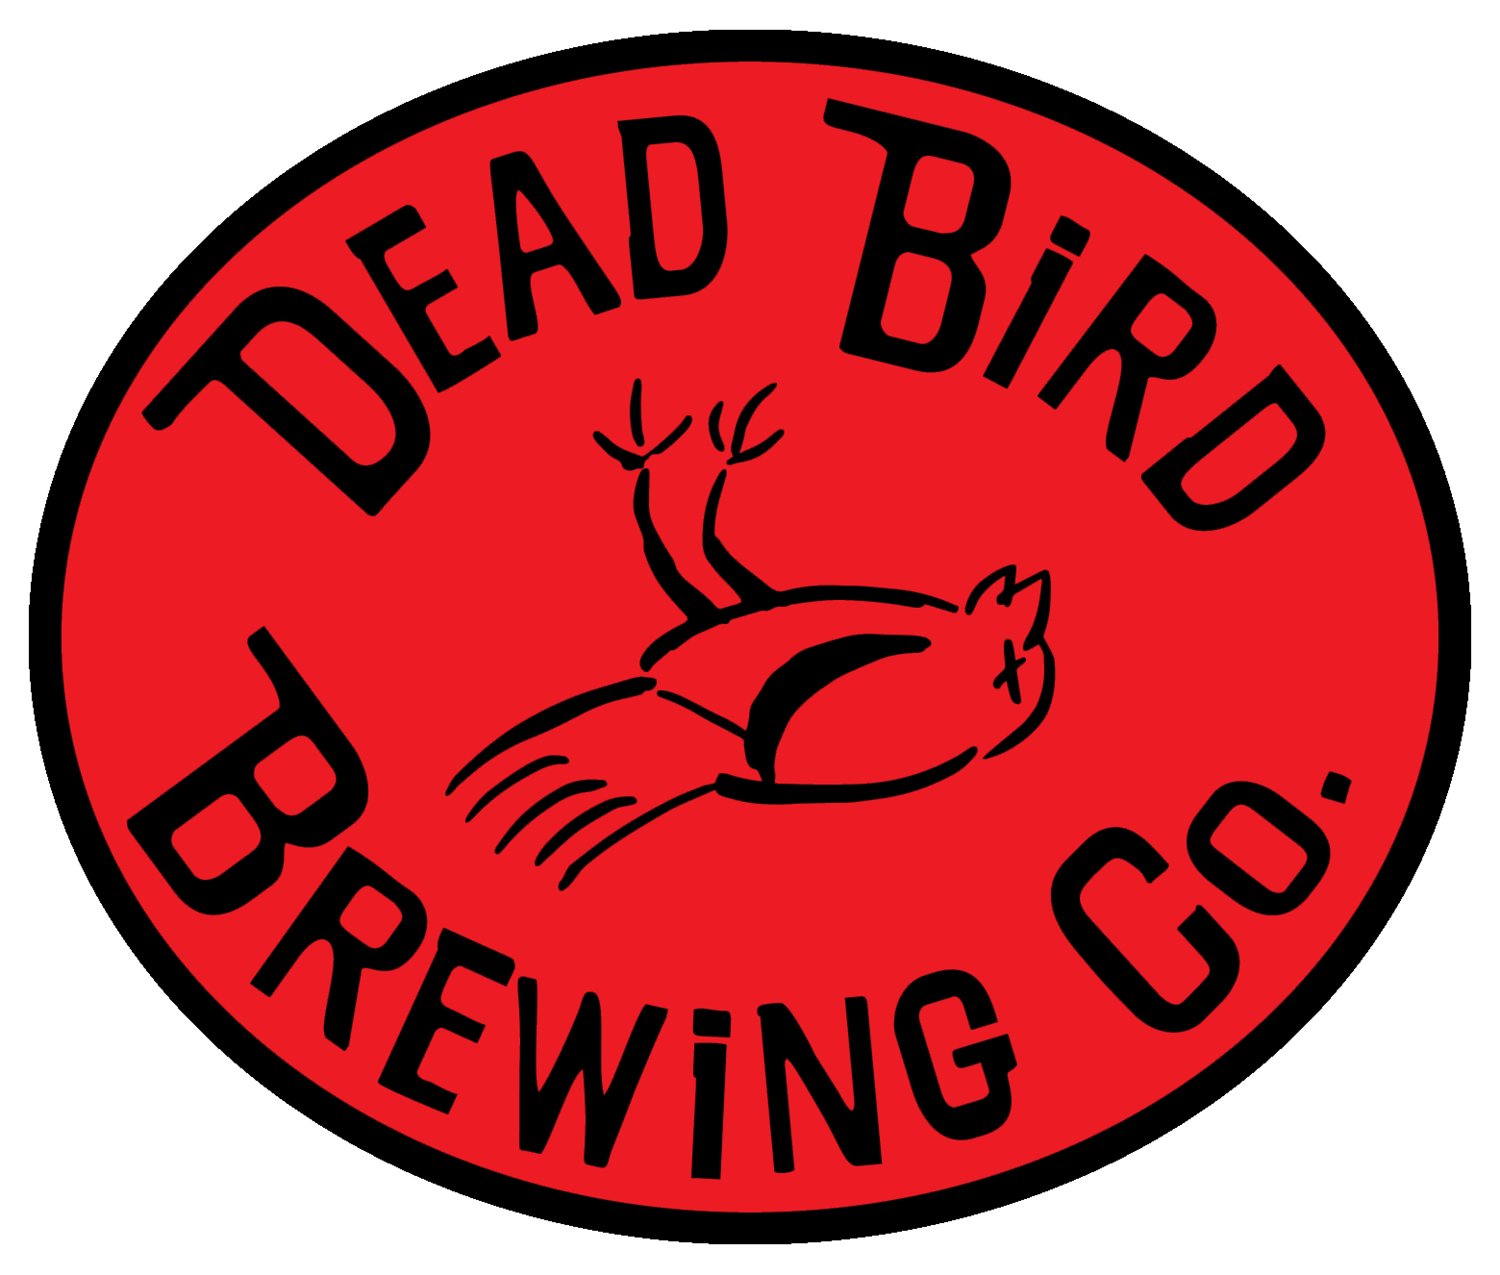 Dead Bird Brewing